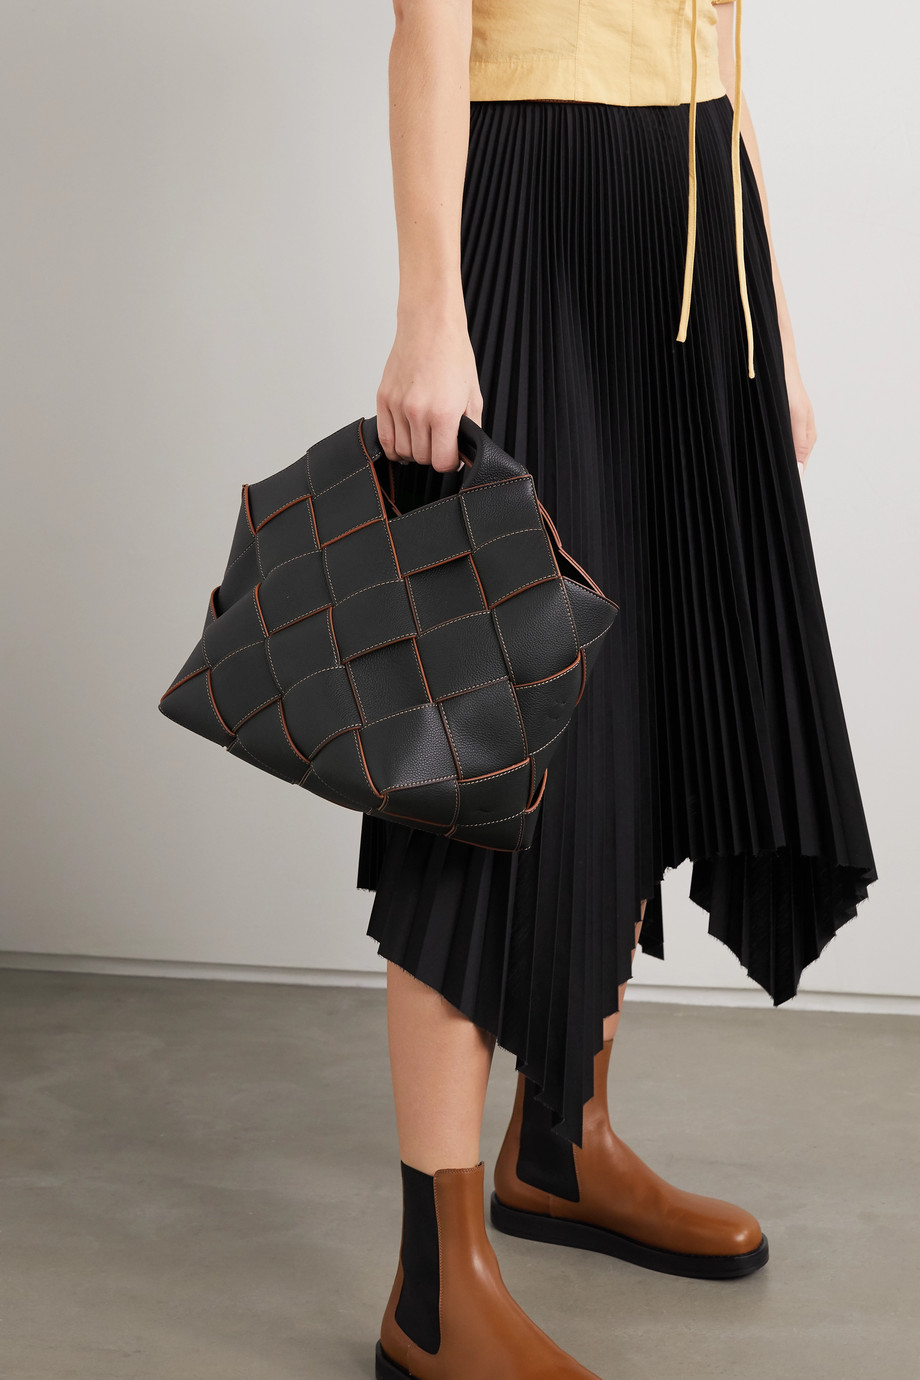 Loewe Woven textured-leather tote